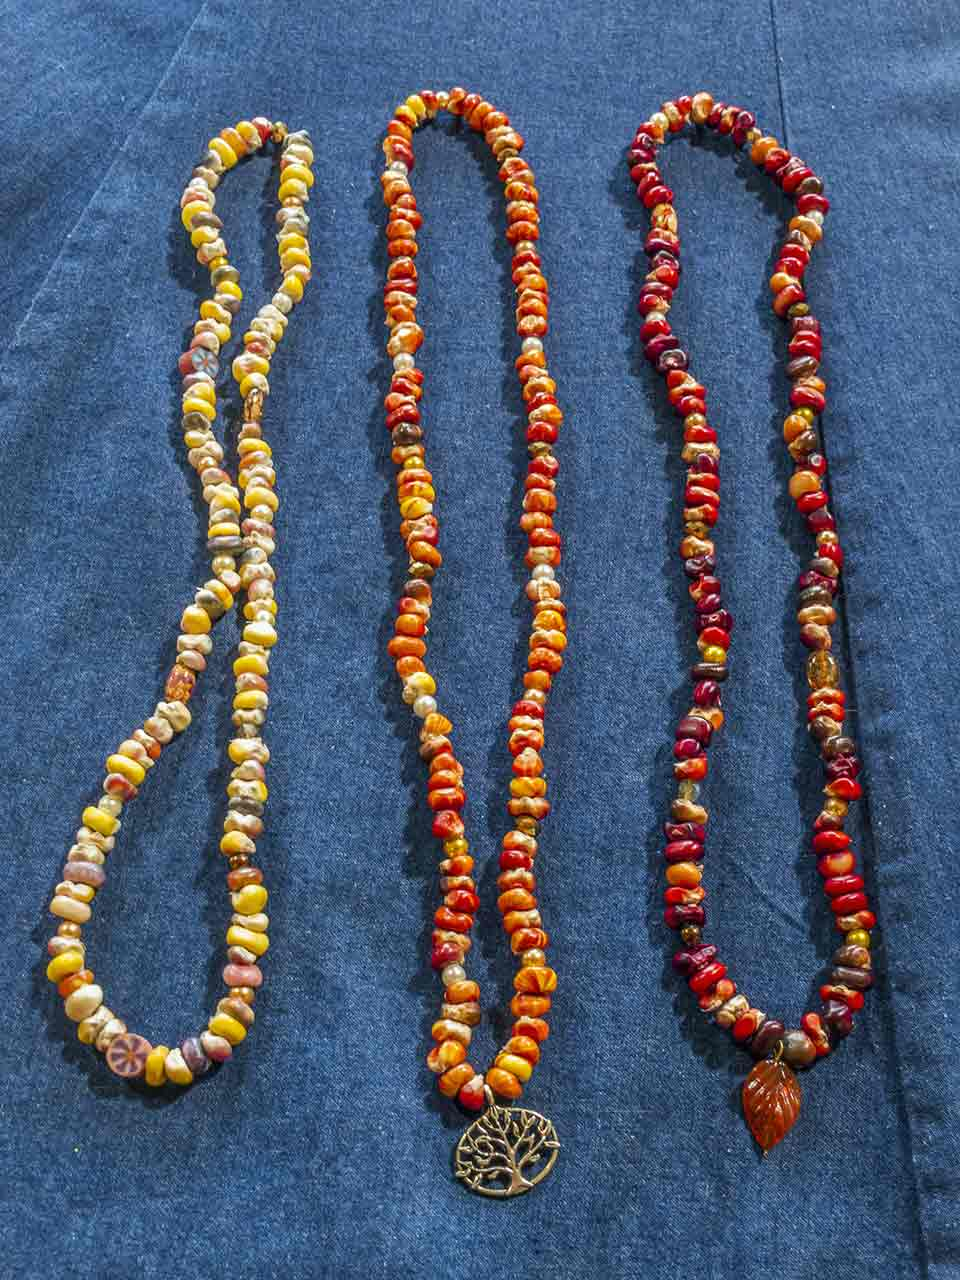 Indian Corn Necklaces - Mary B.